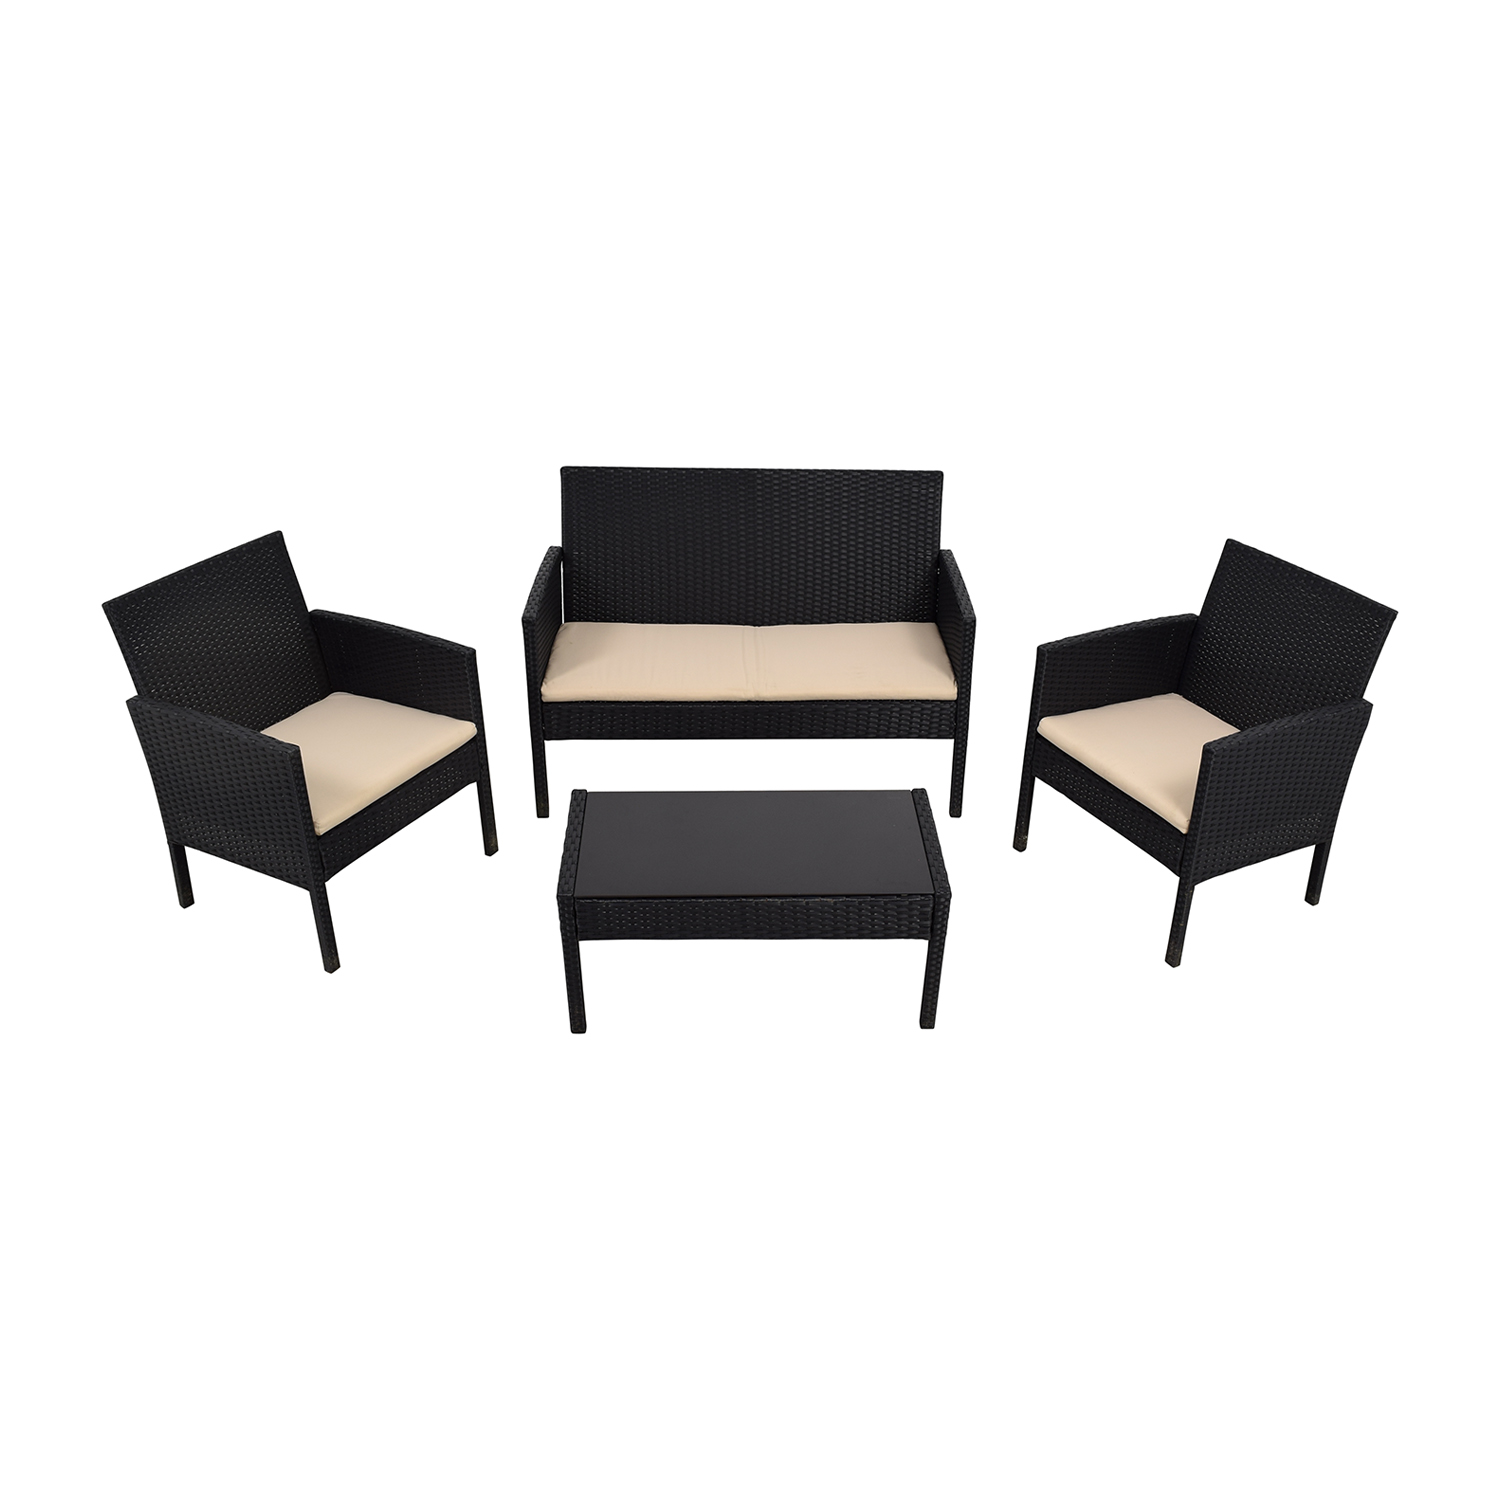 buy radeway black outdoor garden patio furniture radeway dining sets